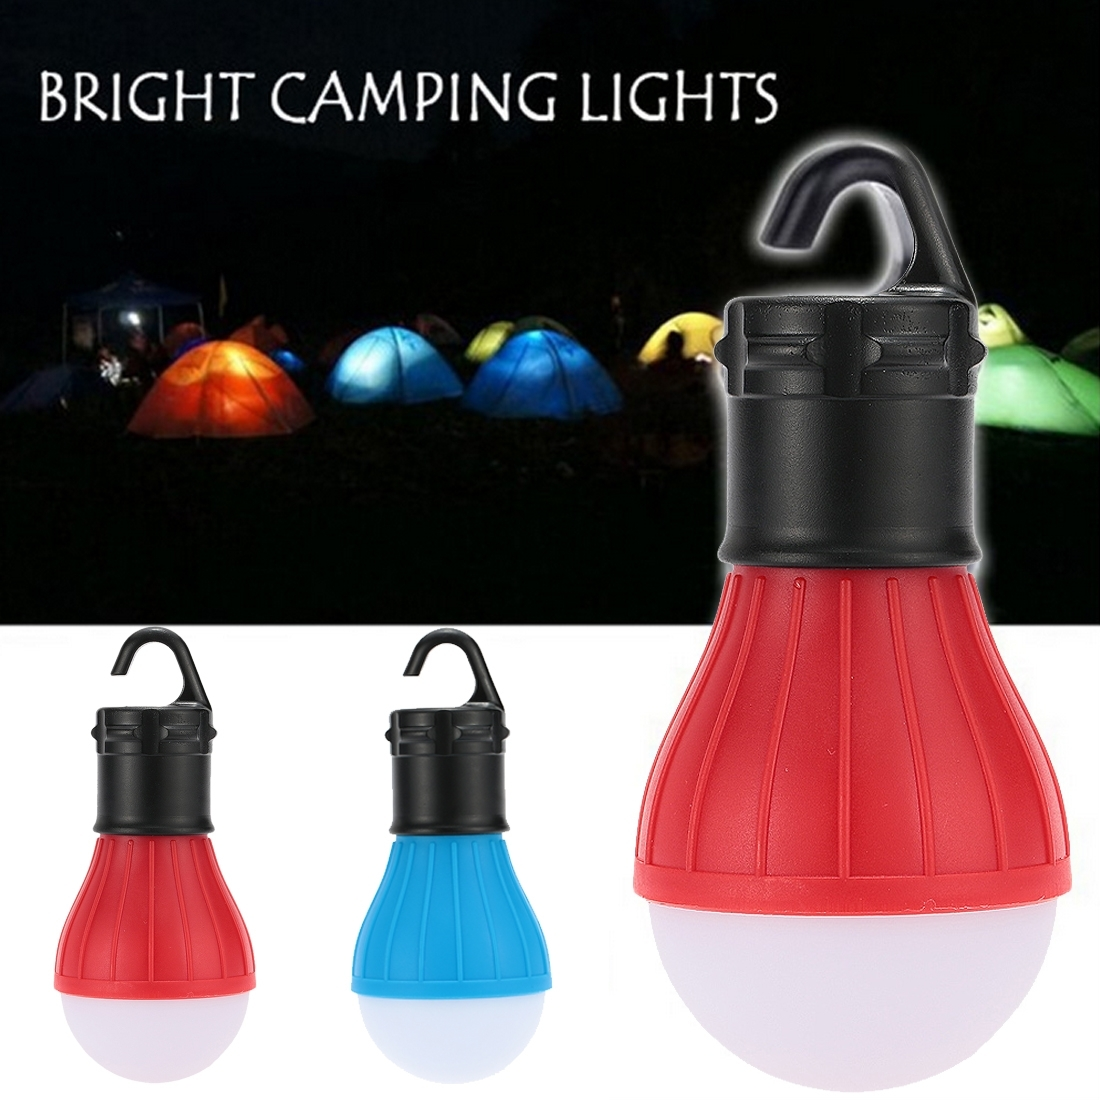 Portable Outdoor Hanging 3 Led Camping Lantern,soft Light Led Camp Within Outdoor Hanging Camping Lights (View 10 of 15)